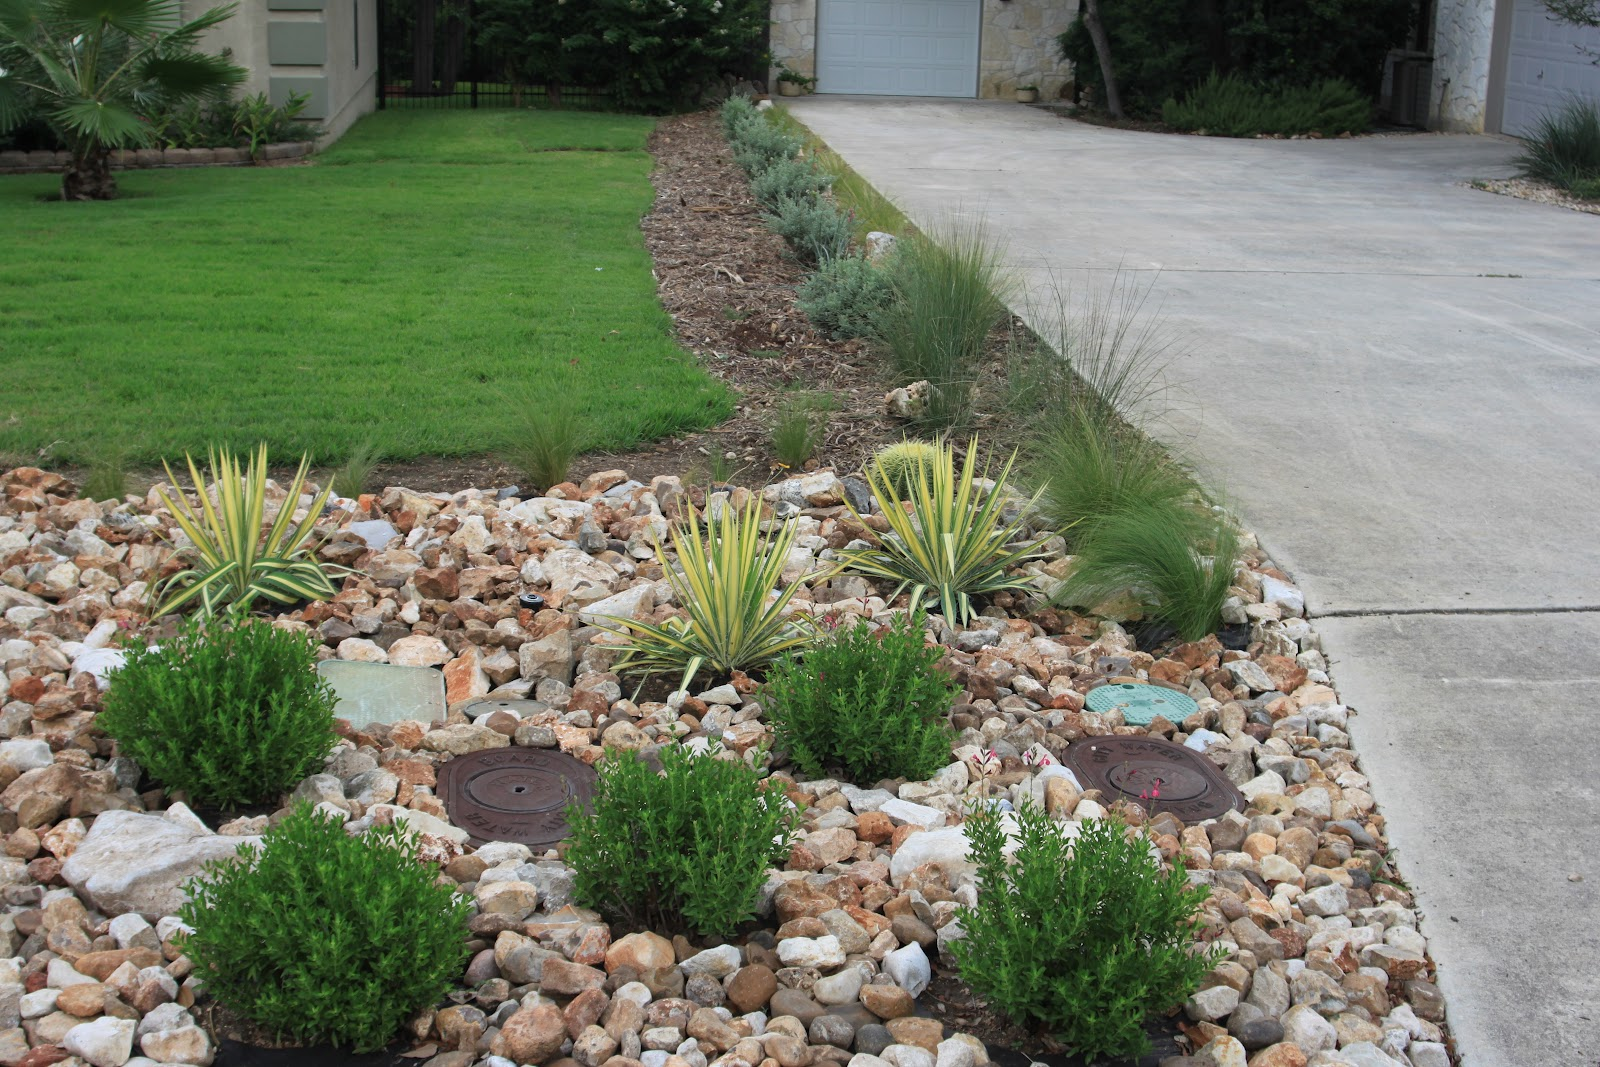 Willing landscape front lawn landscaping ideas using for Rock landscaping ideas